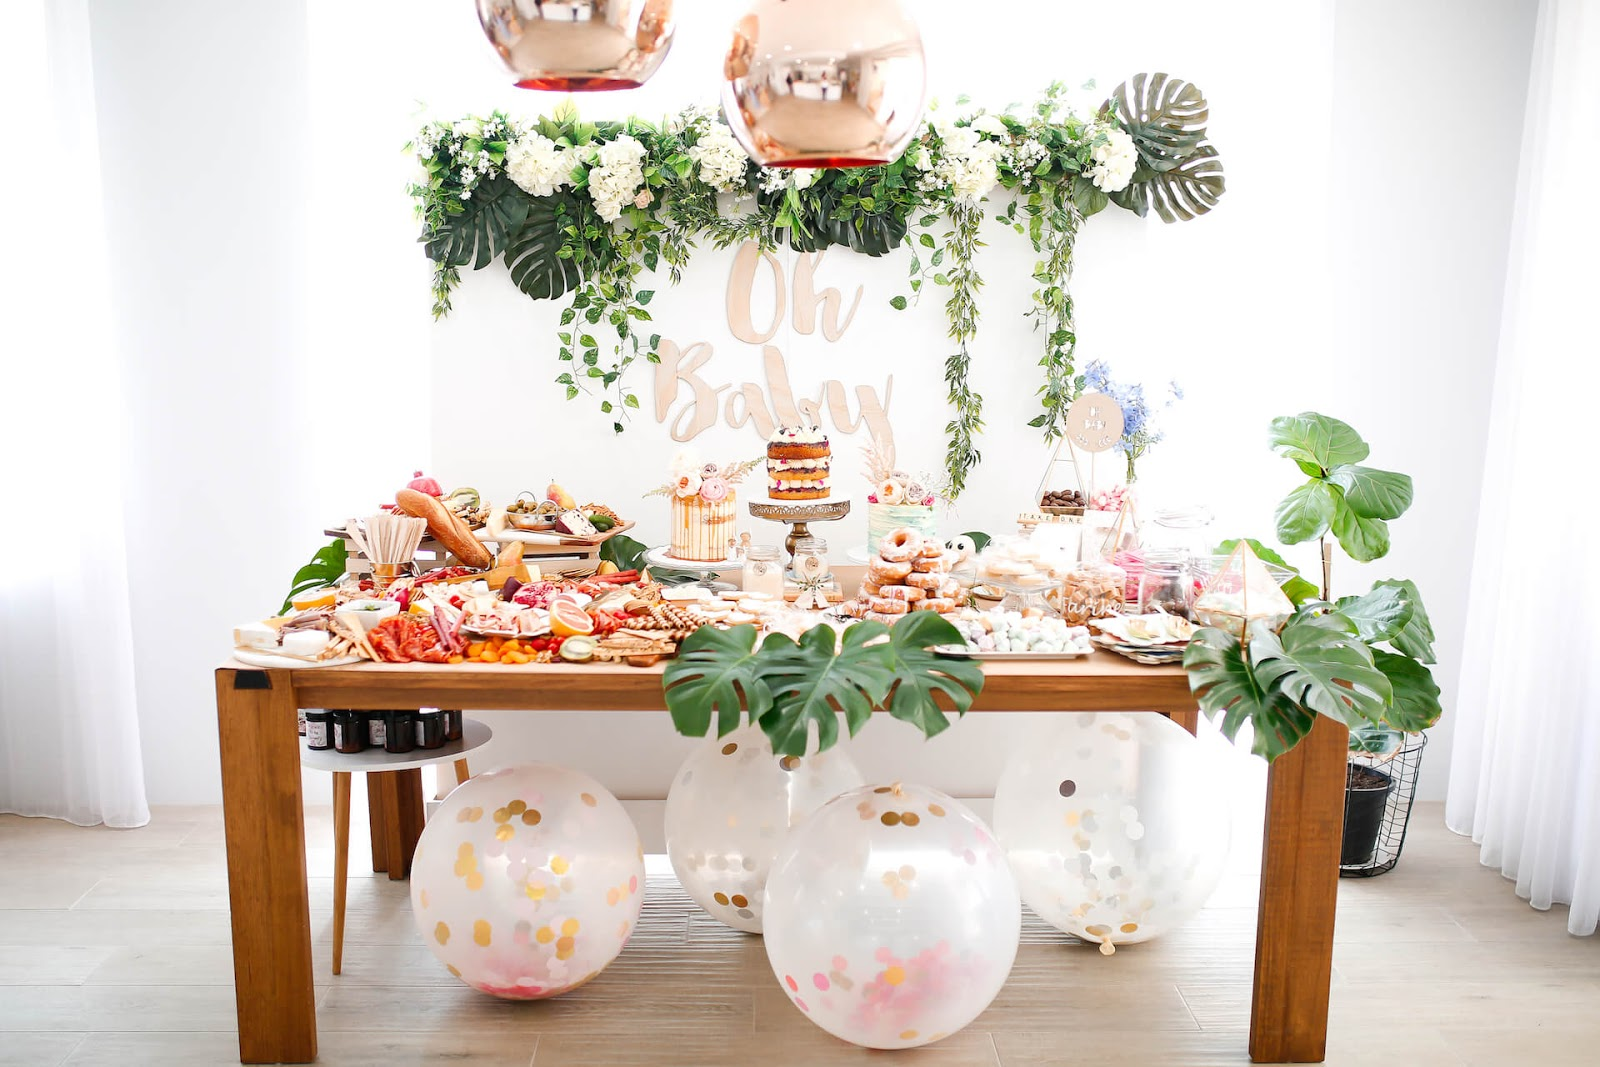 Baby shower food table with greenery around it